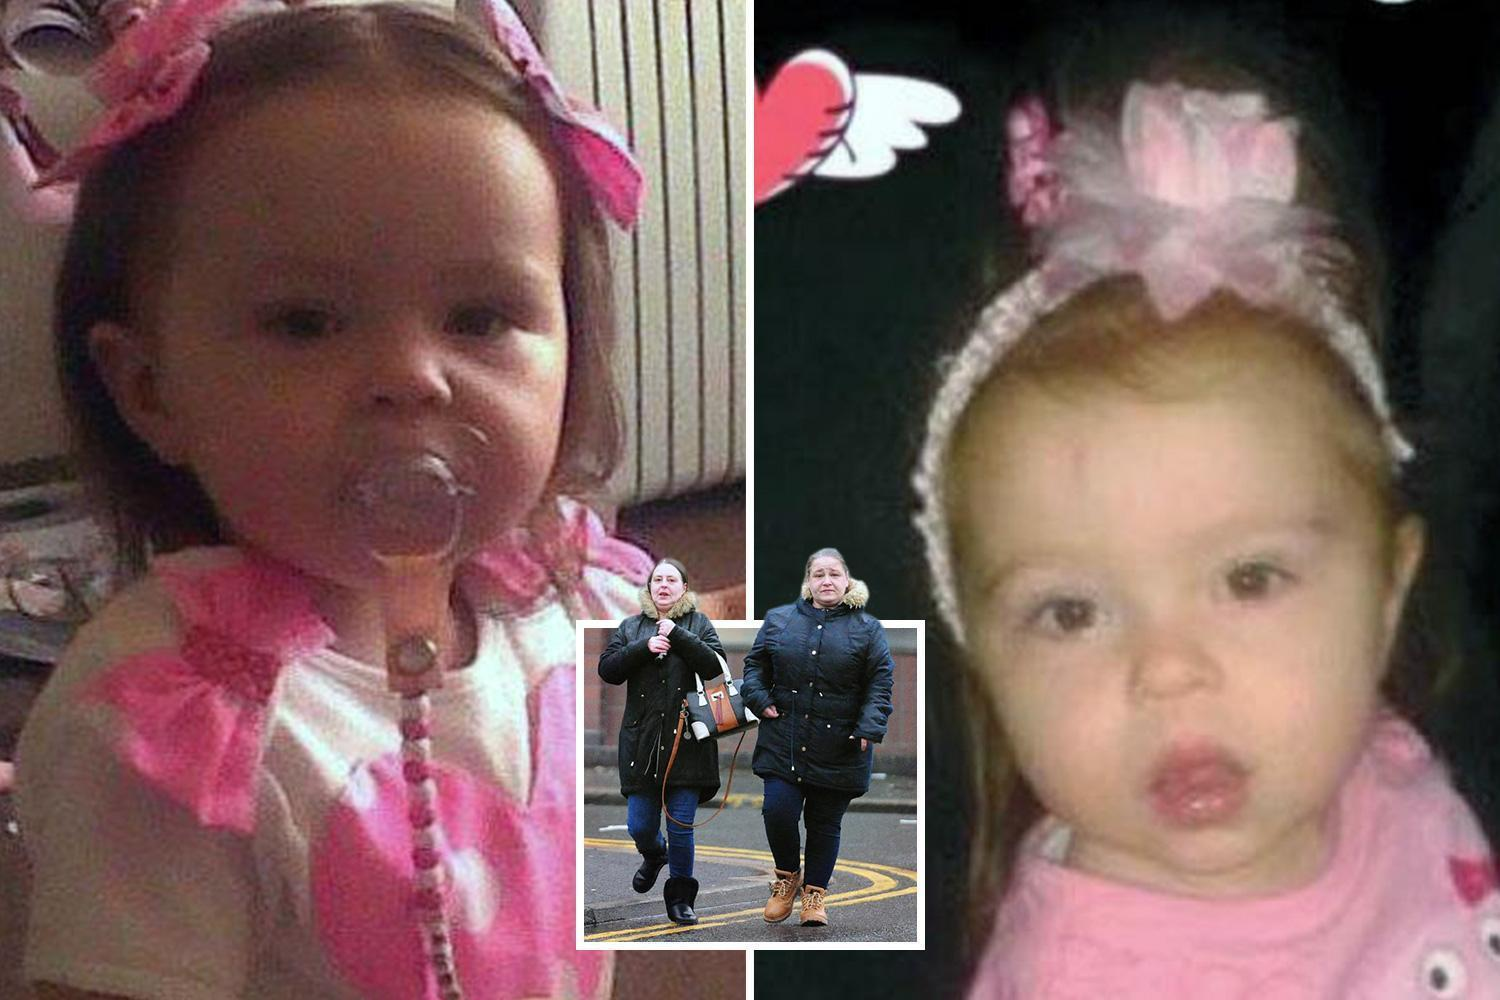 Evil mum and partner guilty of starving two-year-old girl to death in filthy insect-infested flat